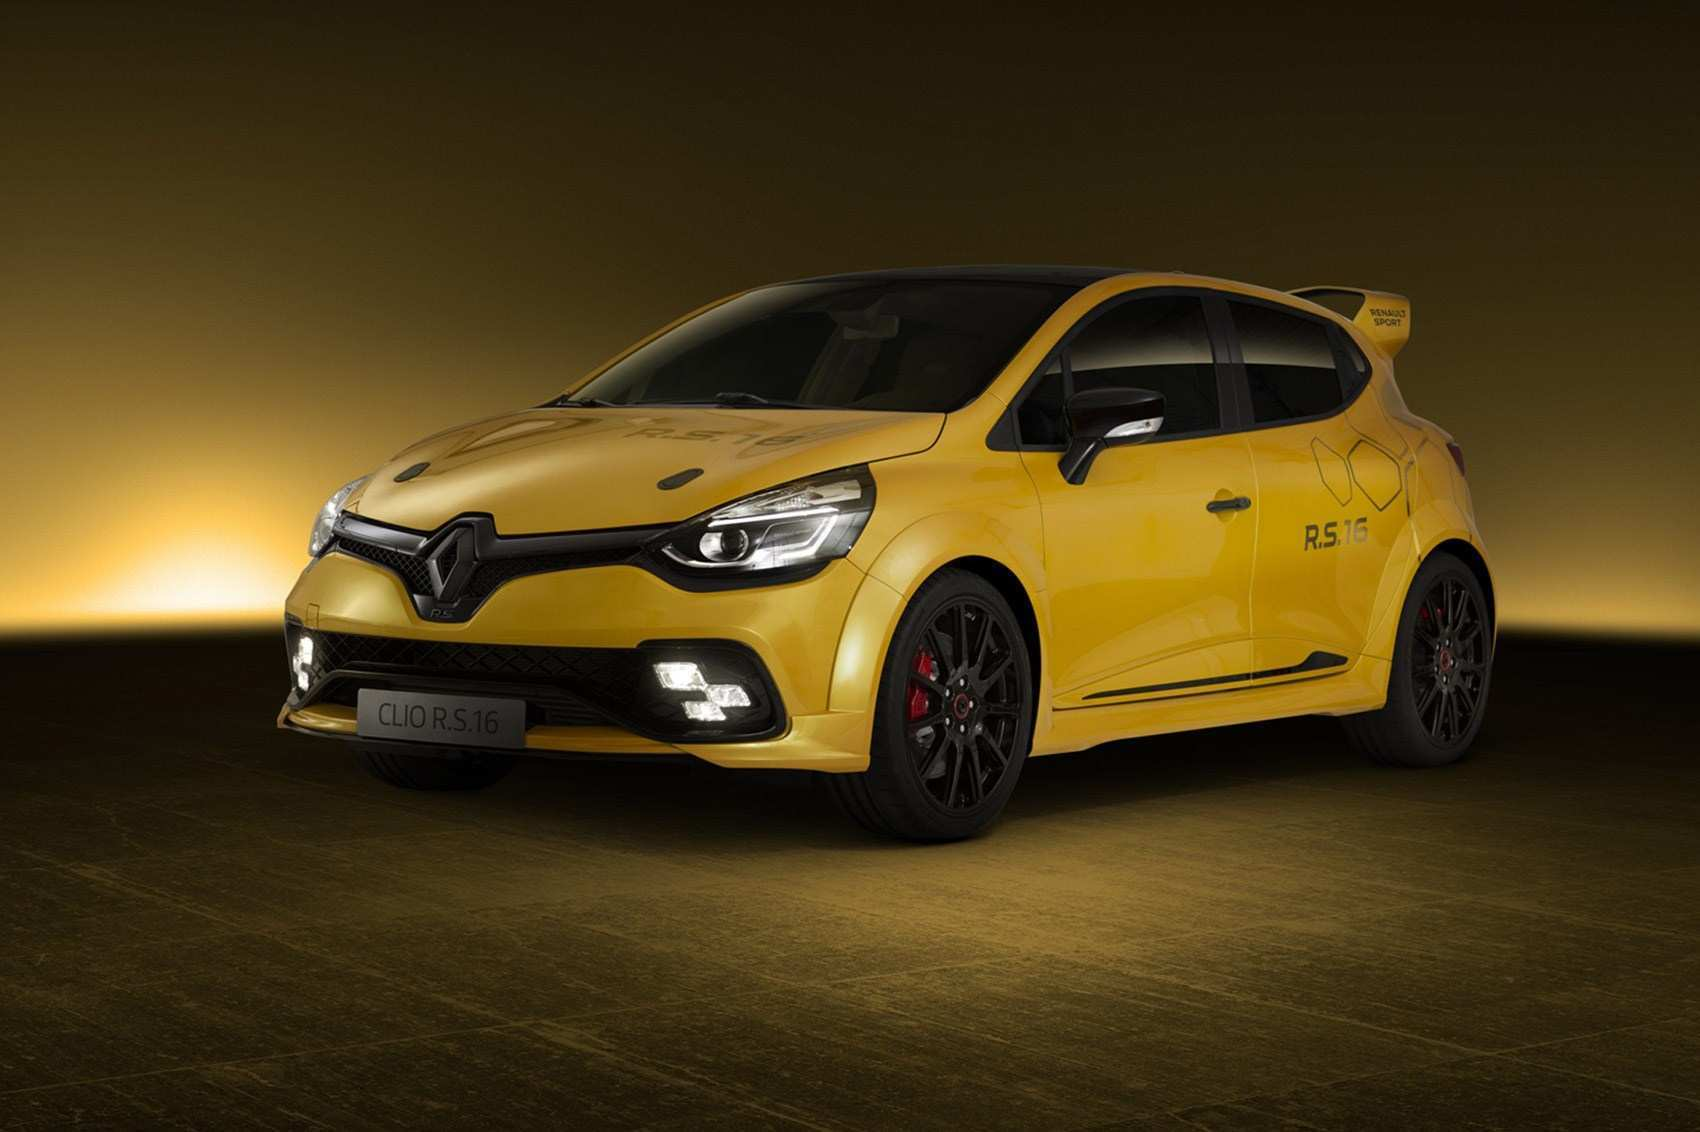 66 All New 2019 Renault Clio Rs Redesign for 2019 Renault Clio Rs